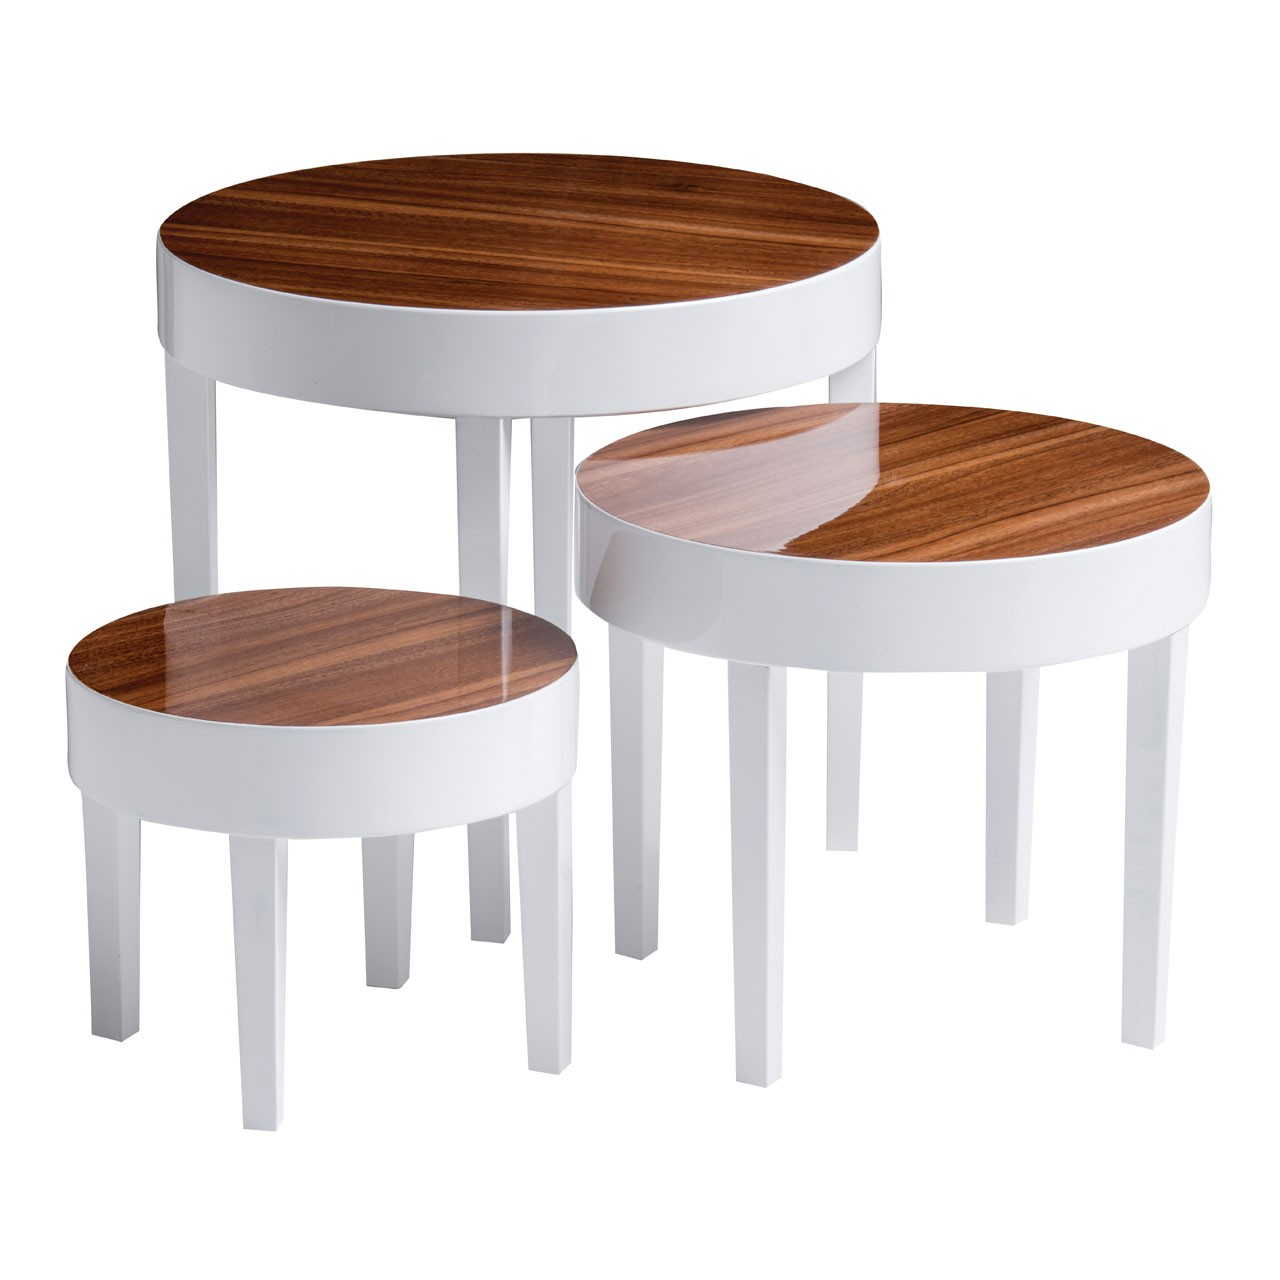 Pear Wood High Gloss Table, Set of 3, White